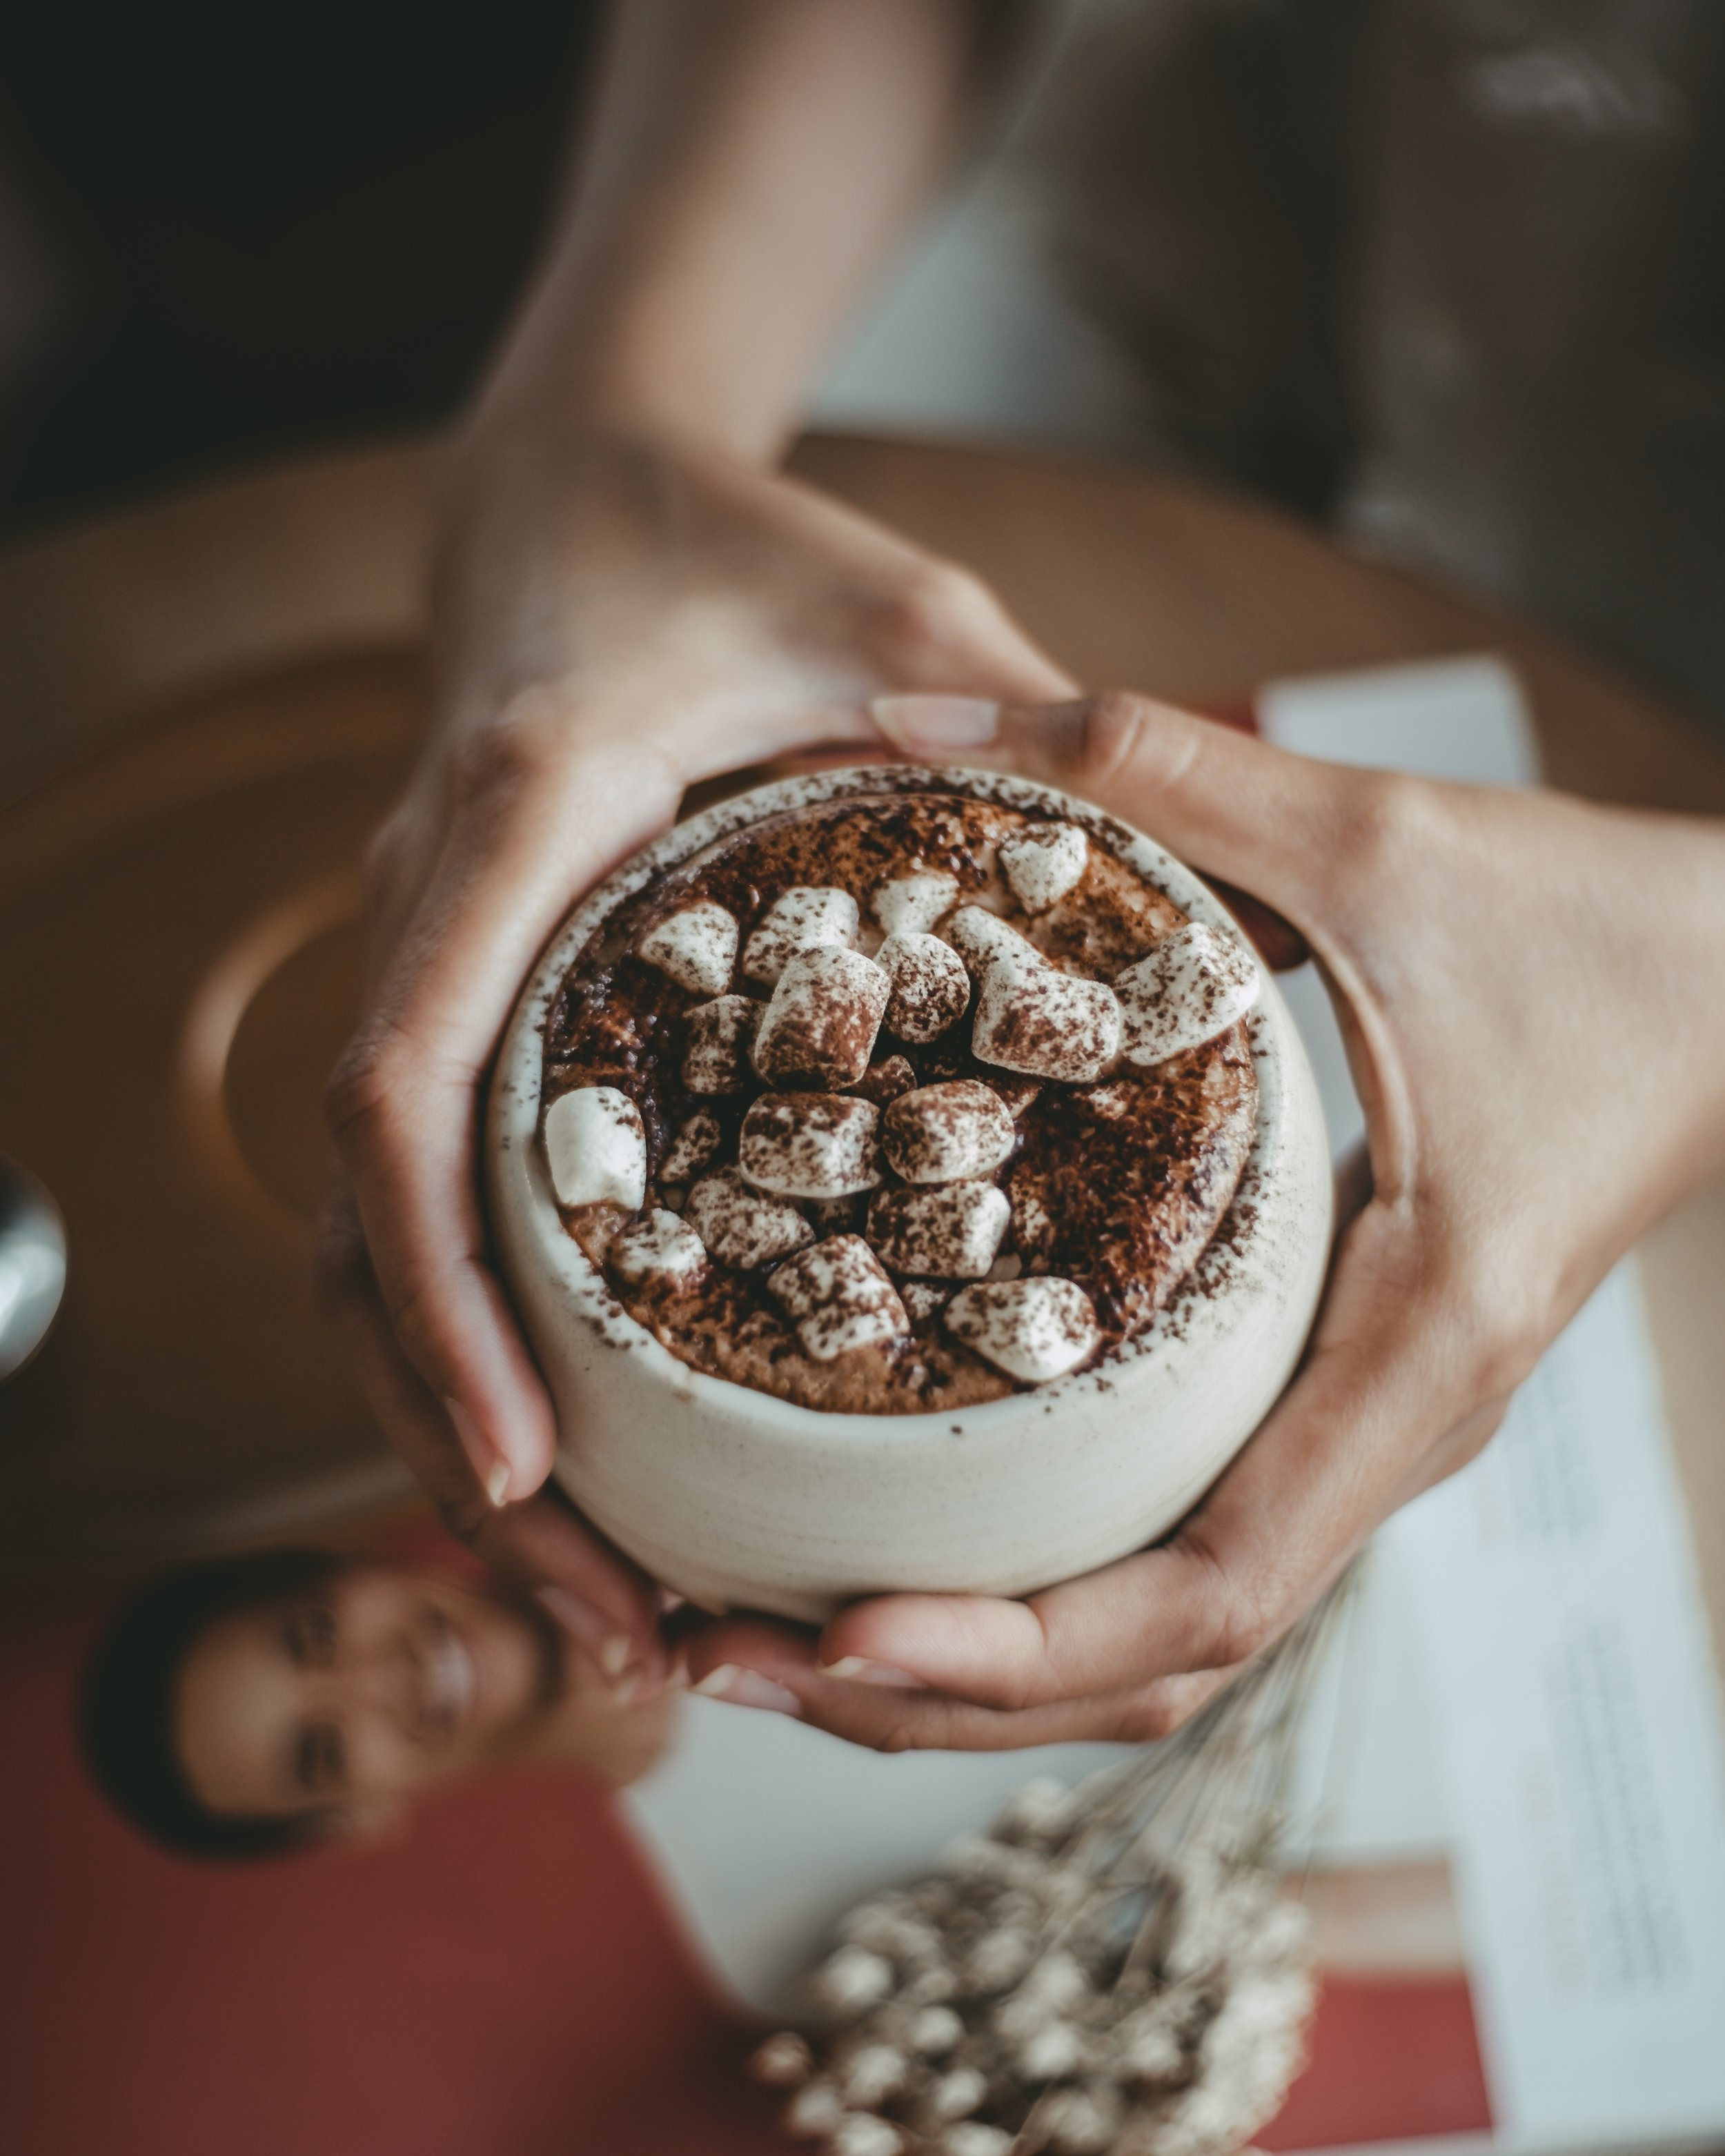 Hot Chocolate Bar   Let's grab the marshmallows, whipped cream, chocolate syrup, candy, nuts, and have a fun hot chocolate bar fit for any age!